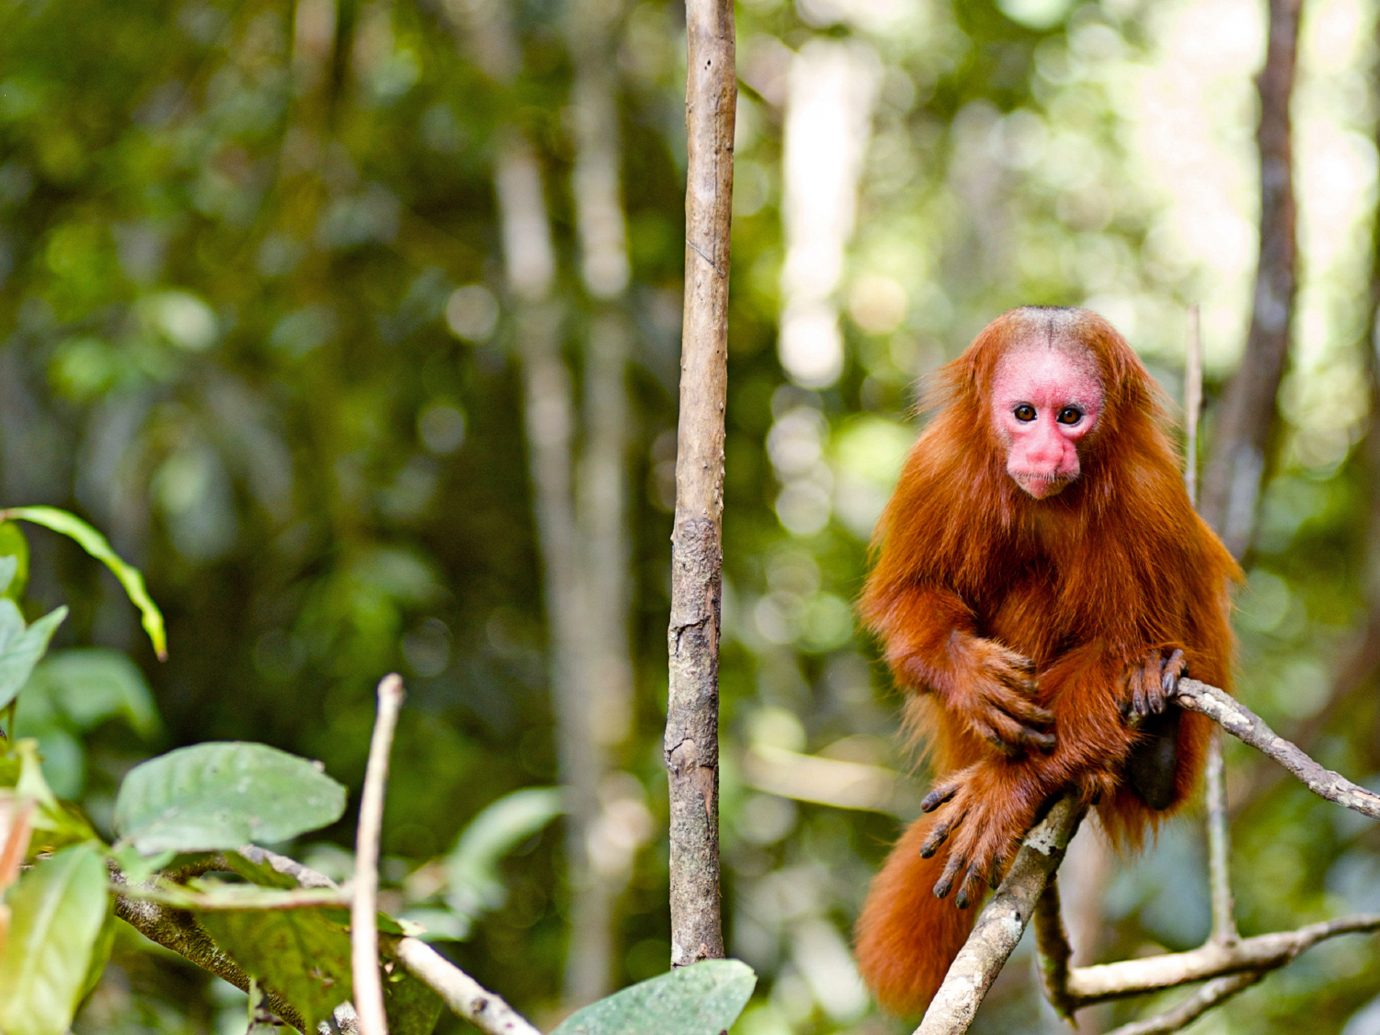 Jungle Natural wonders Nature Outdoor Activities Outdoors Scenic views Travel Tips Wildlife tree outdoor animal mammal primate vertebrate fauna new world monkey flora botany Forest monkey macaque leaf flower branch old world monkey woodland rainforest autumn